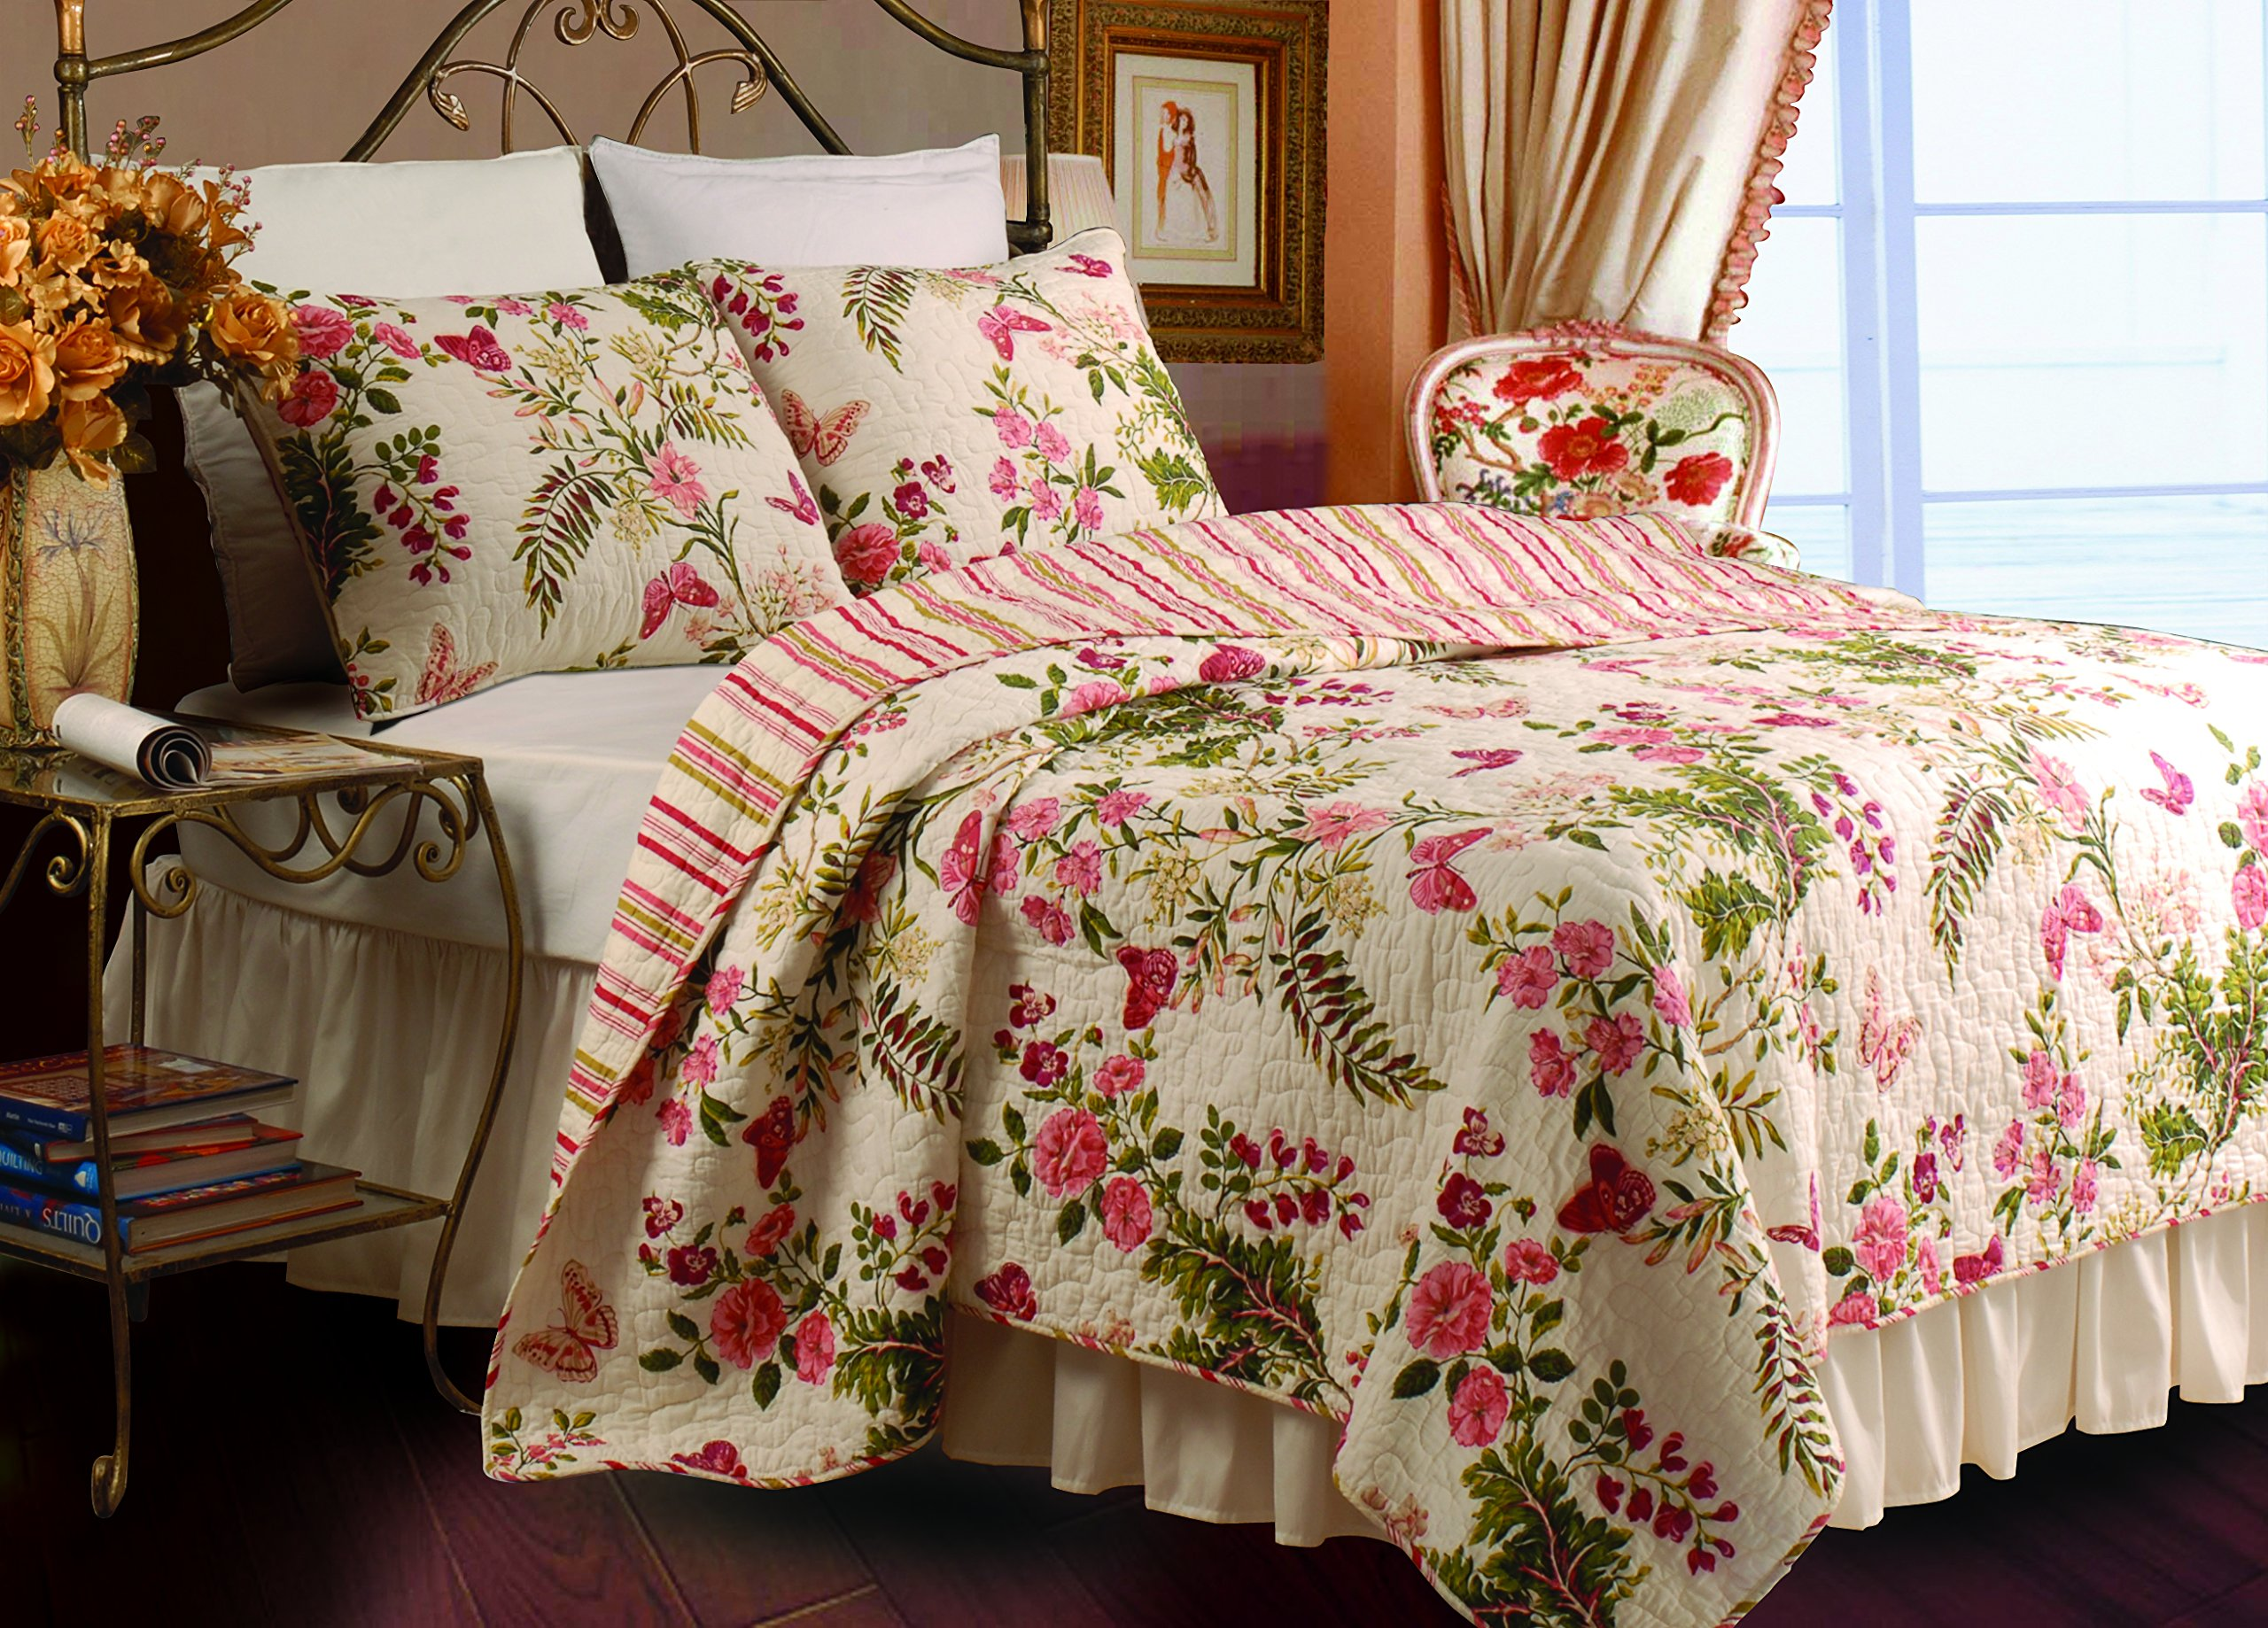 signature multi by angle queen ashley set damalis design quilt